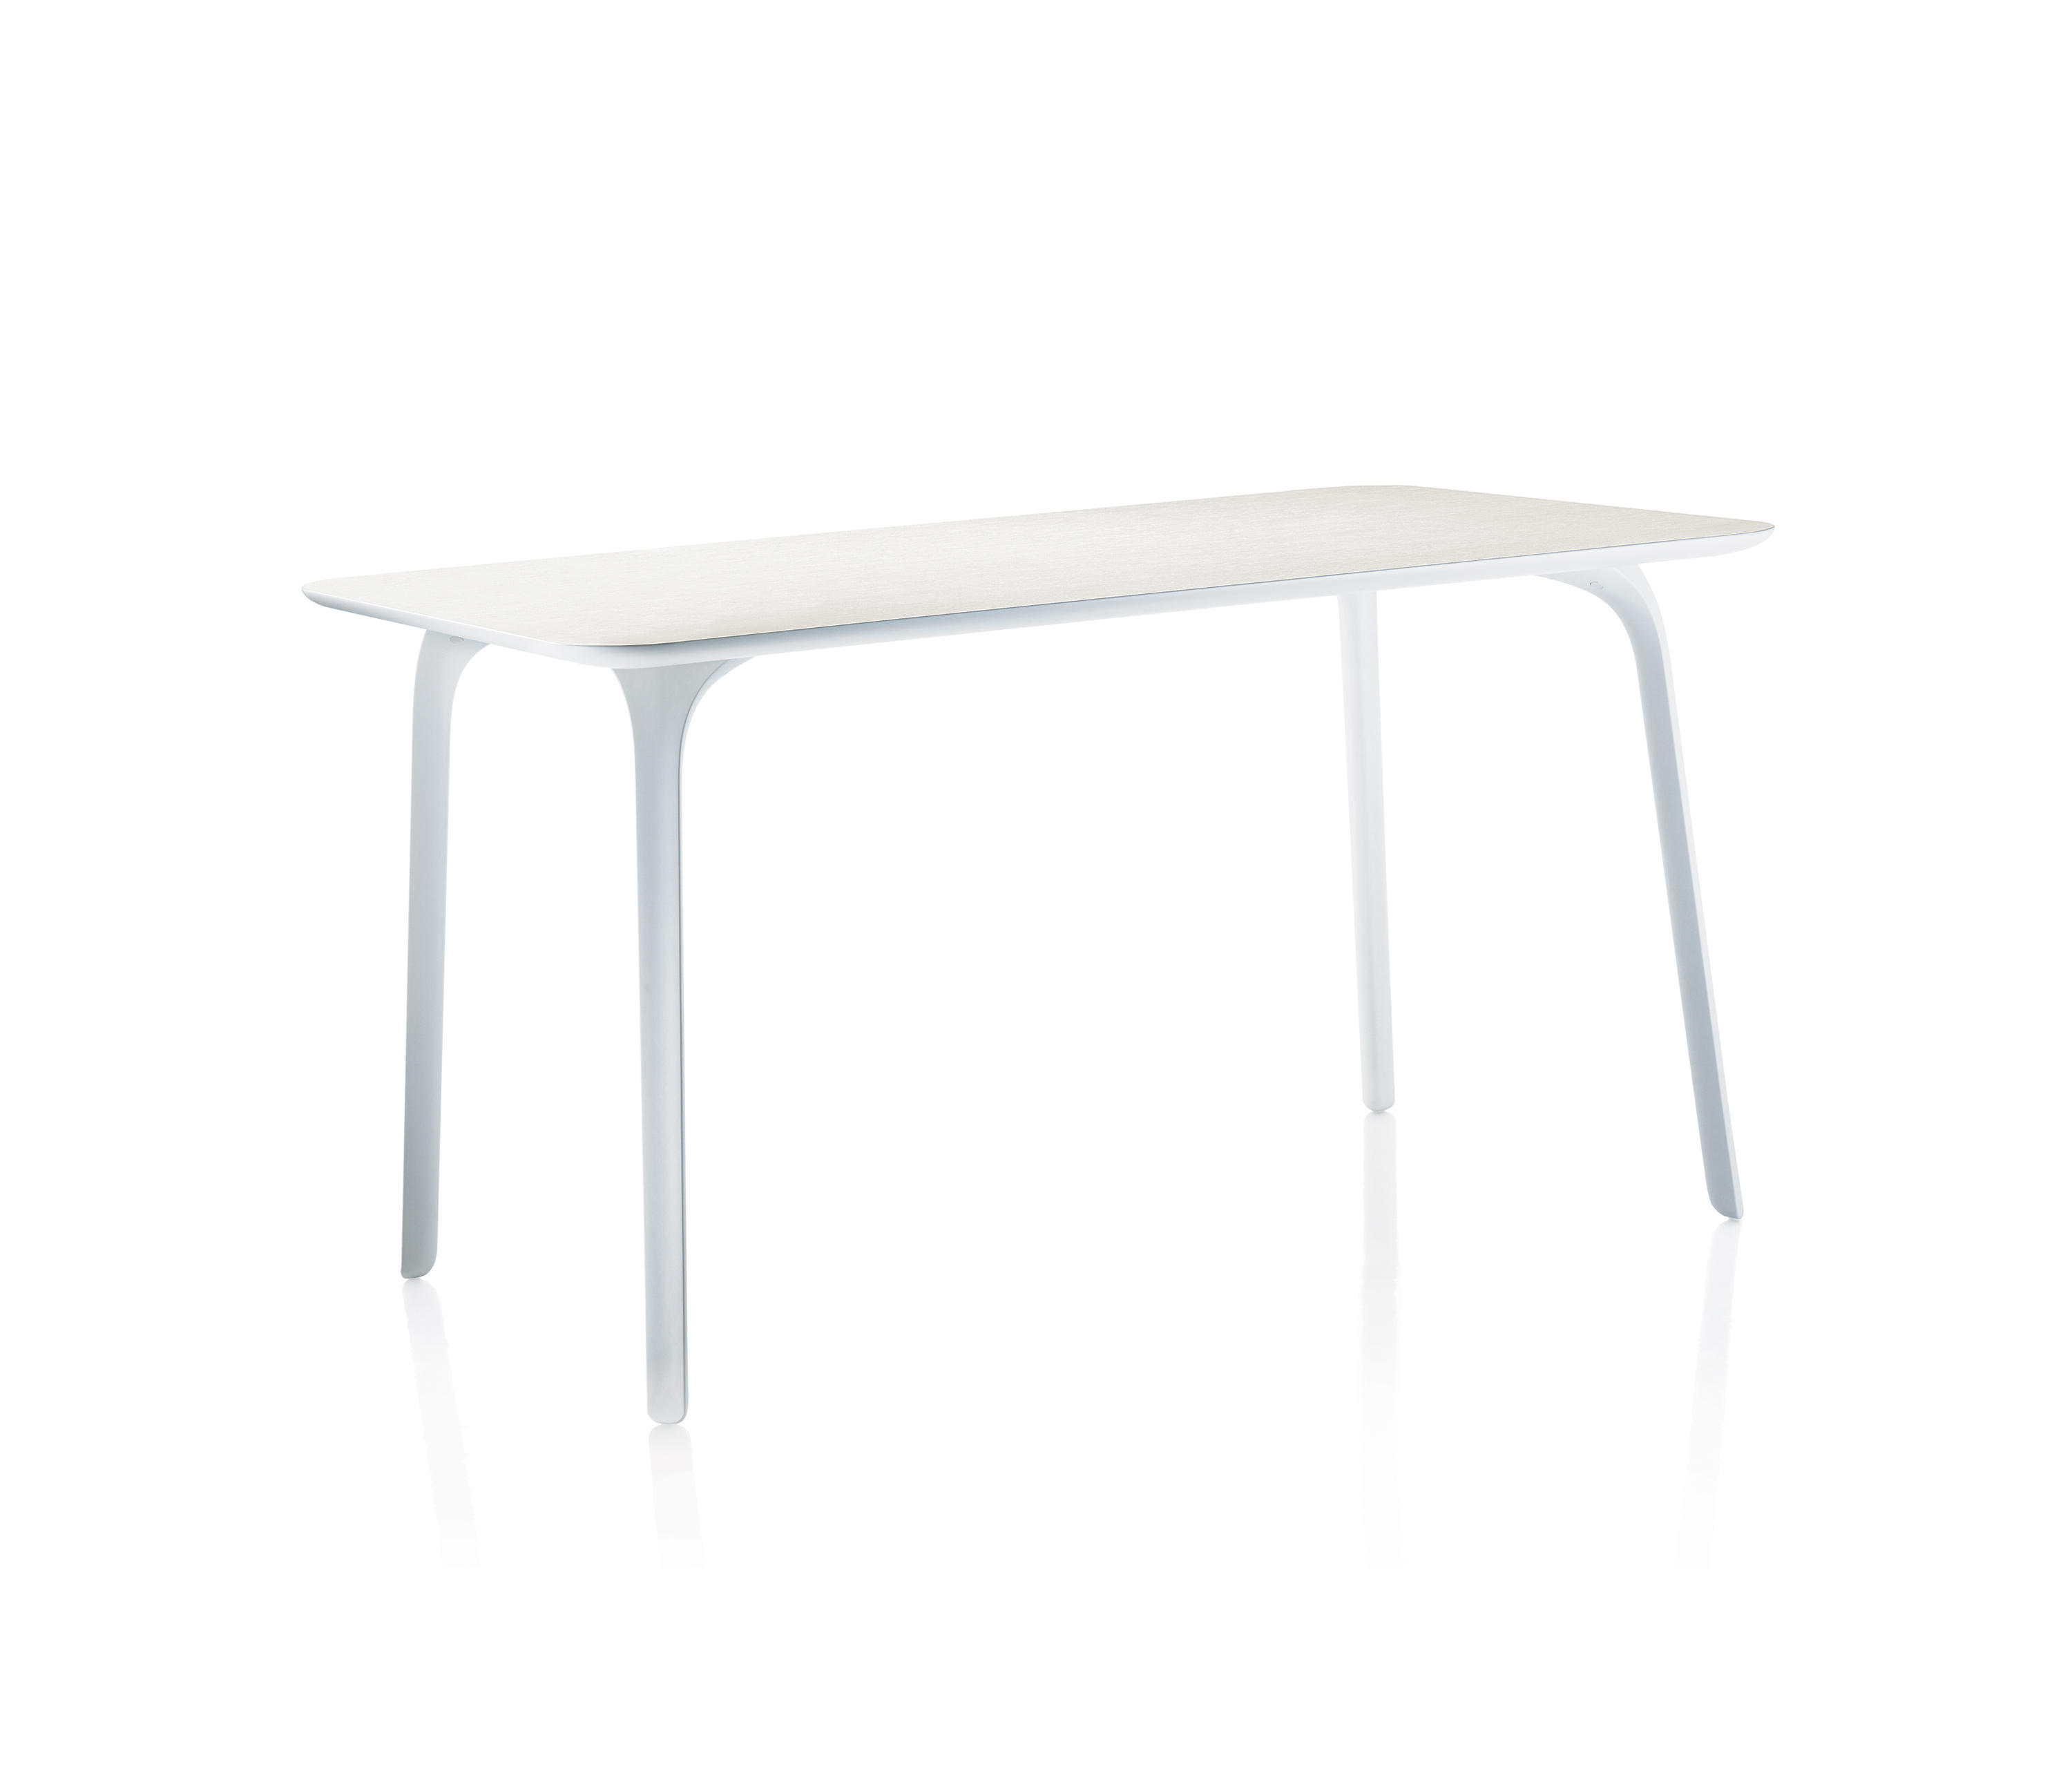 Table first cafeteriatische von magis architonic for Magis table first